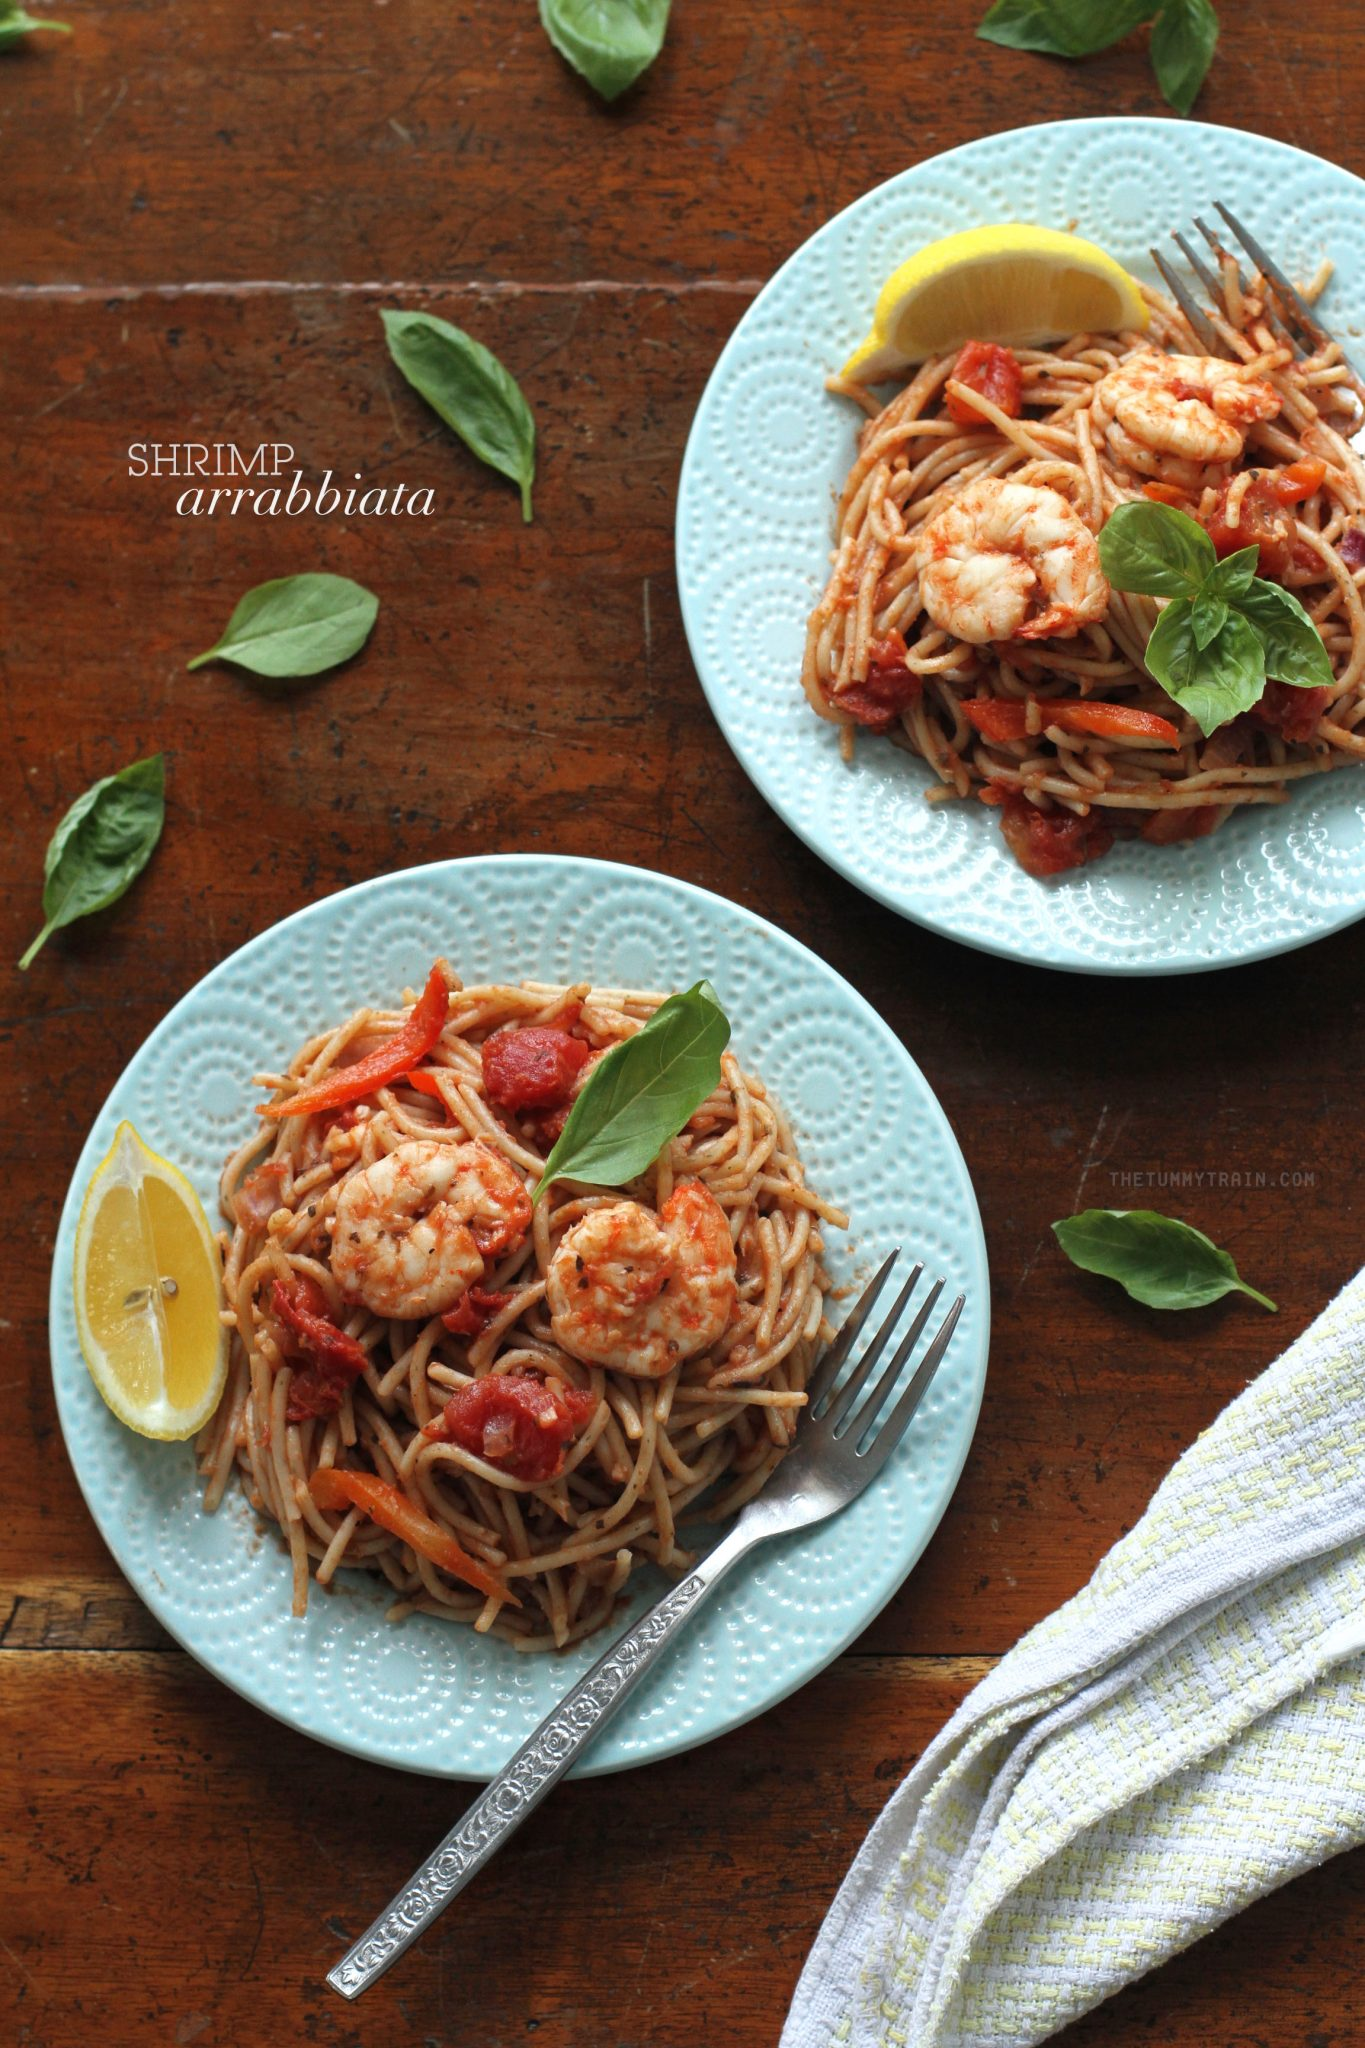 16441898565 be0b1d2090 o - Thinking about pasta and Shrimp Arrabbiata